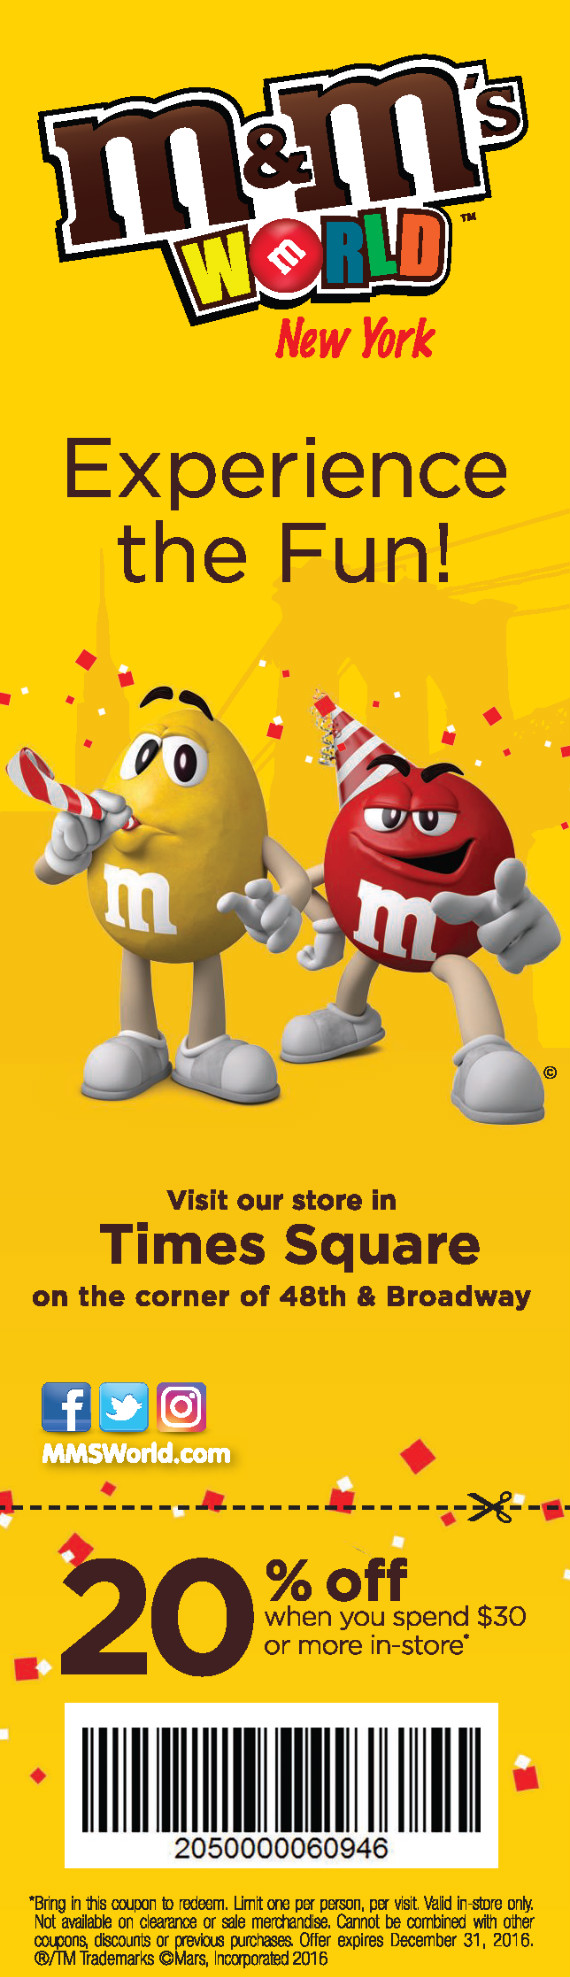 M&M'S World New York - 20% off when you spend $30 or more in-store. Expires: 12/31/2016